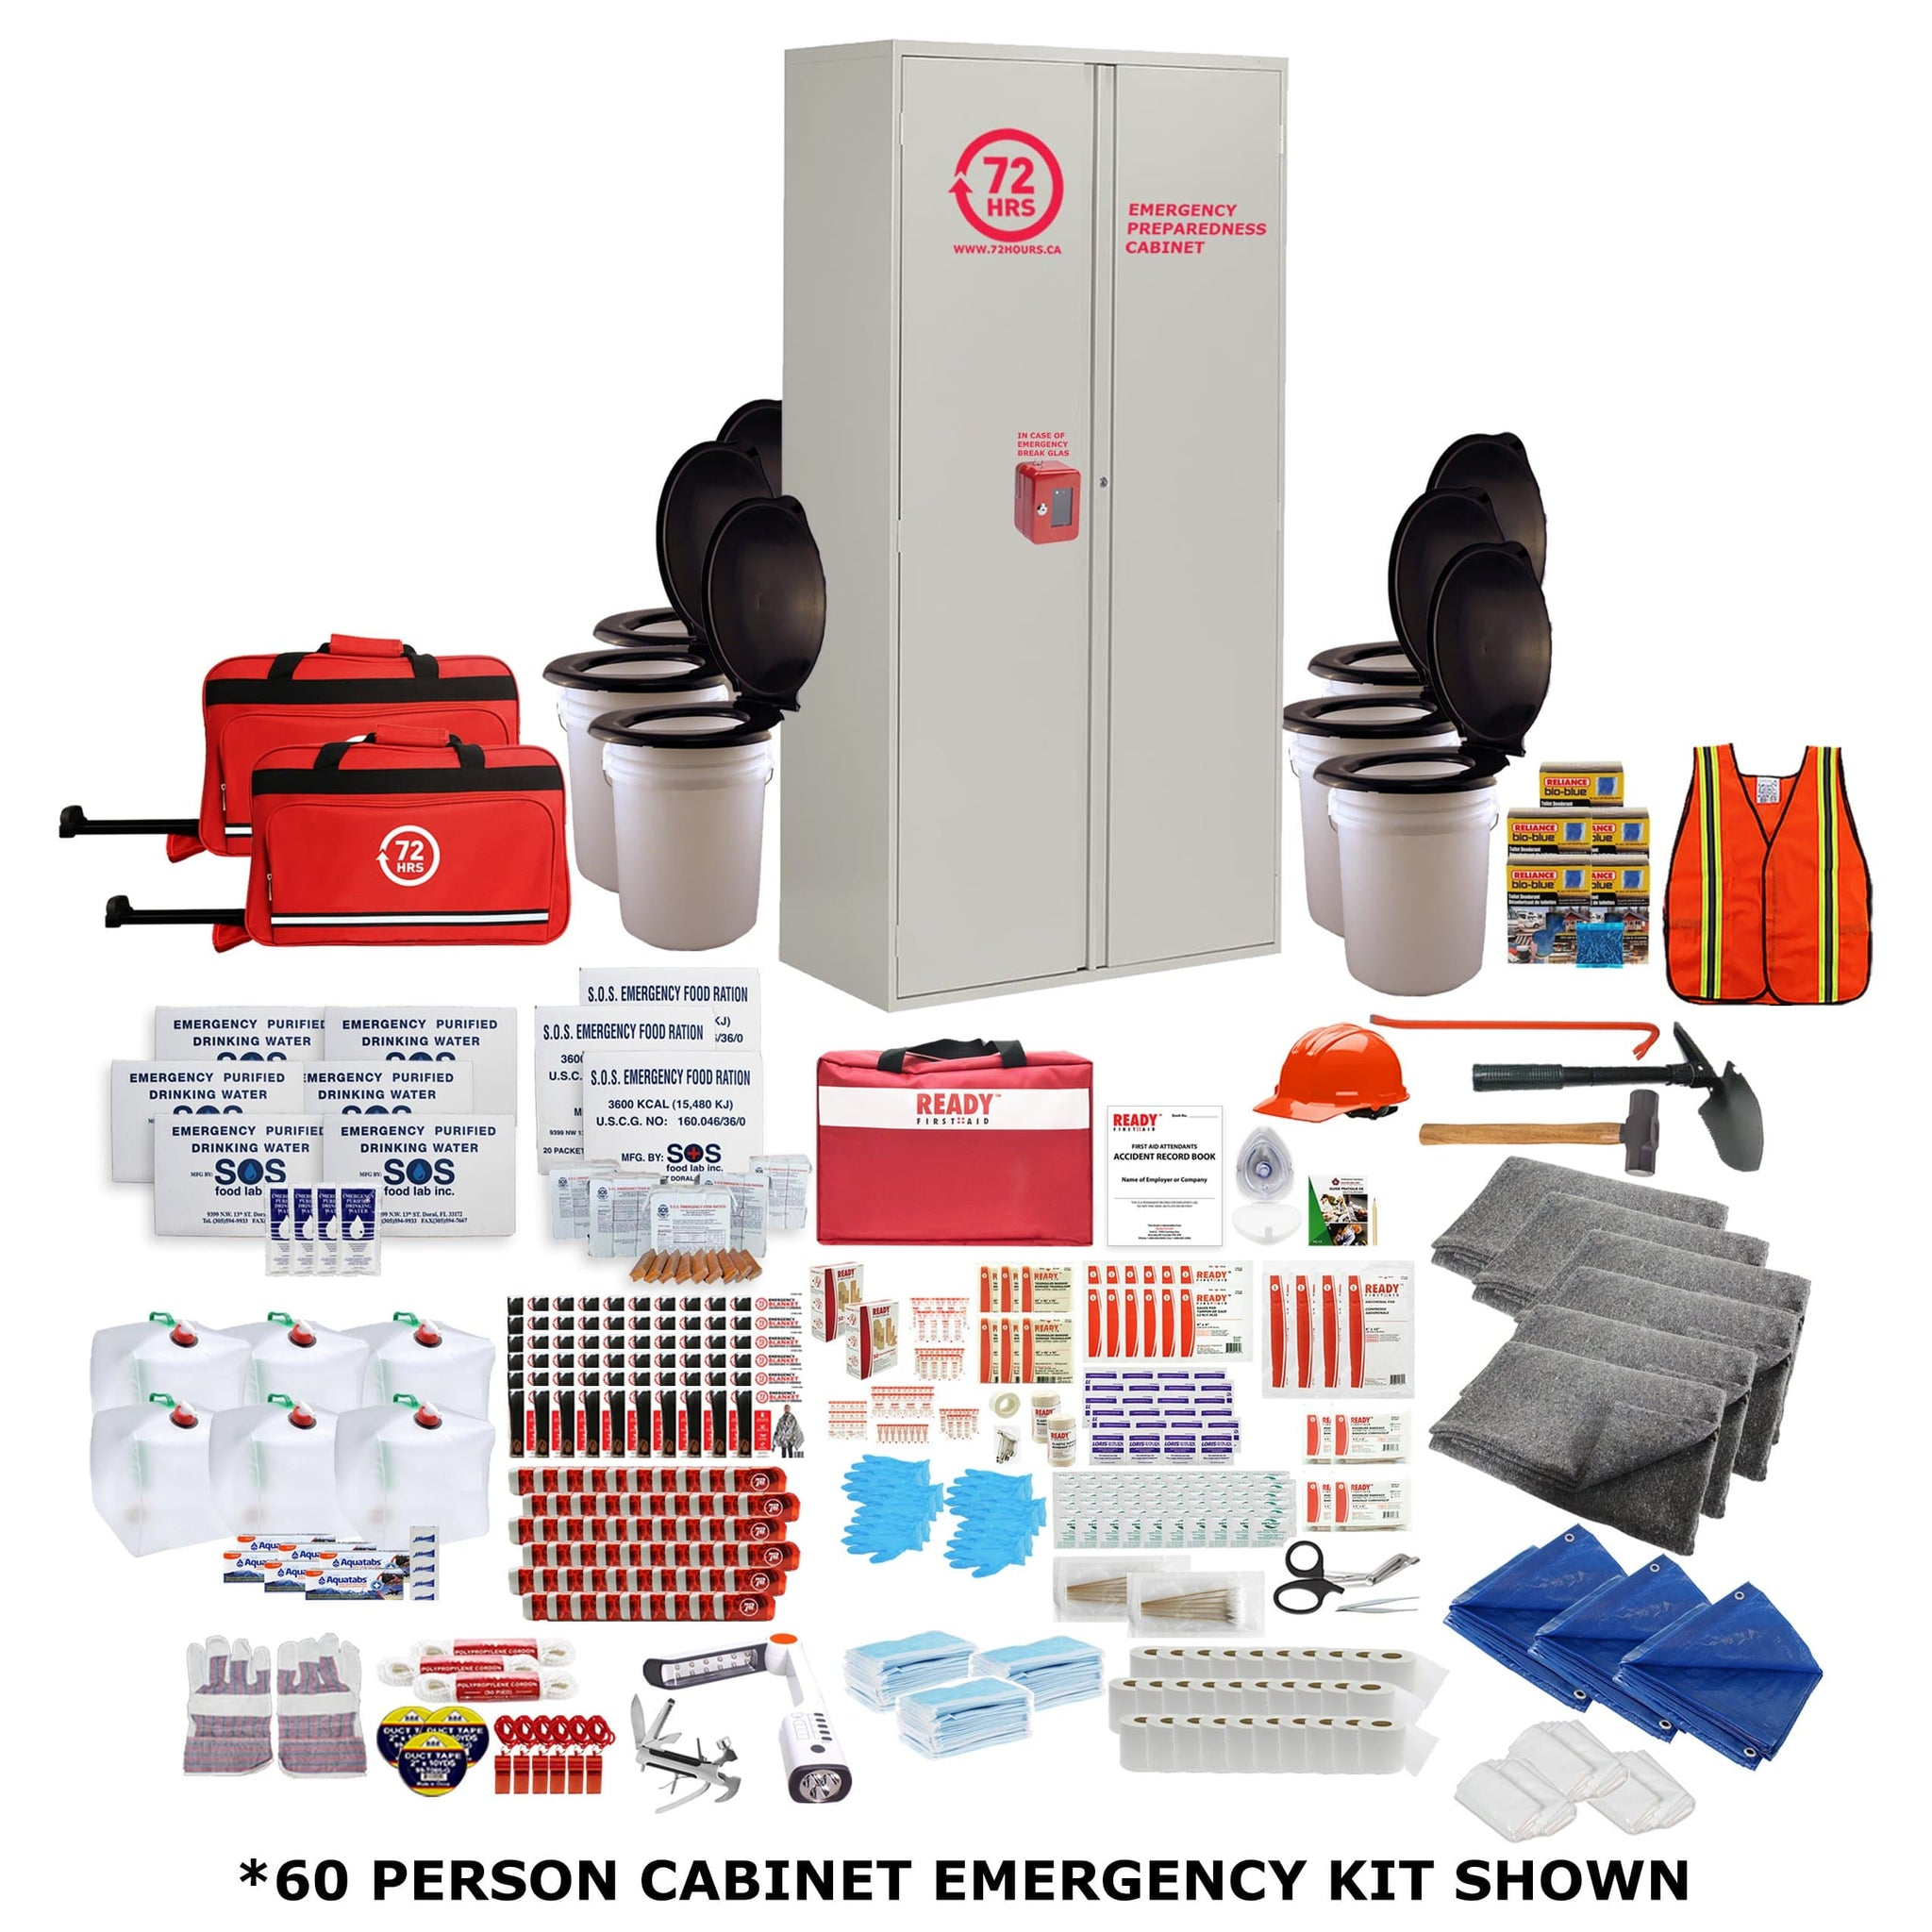 70 Person Emergency Cabinet Kit